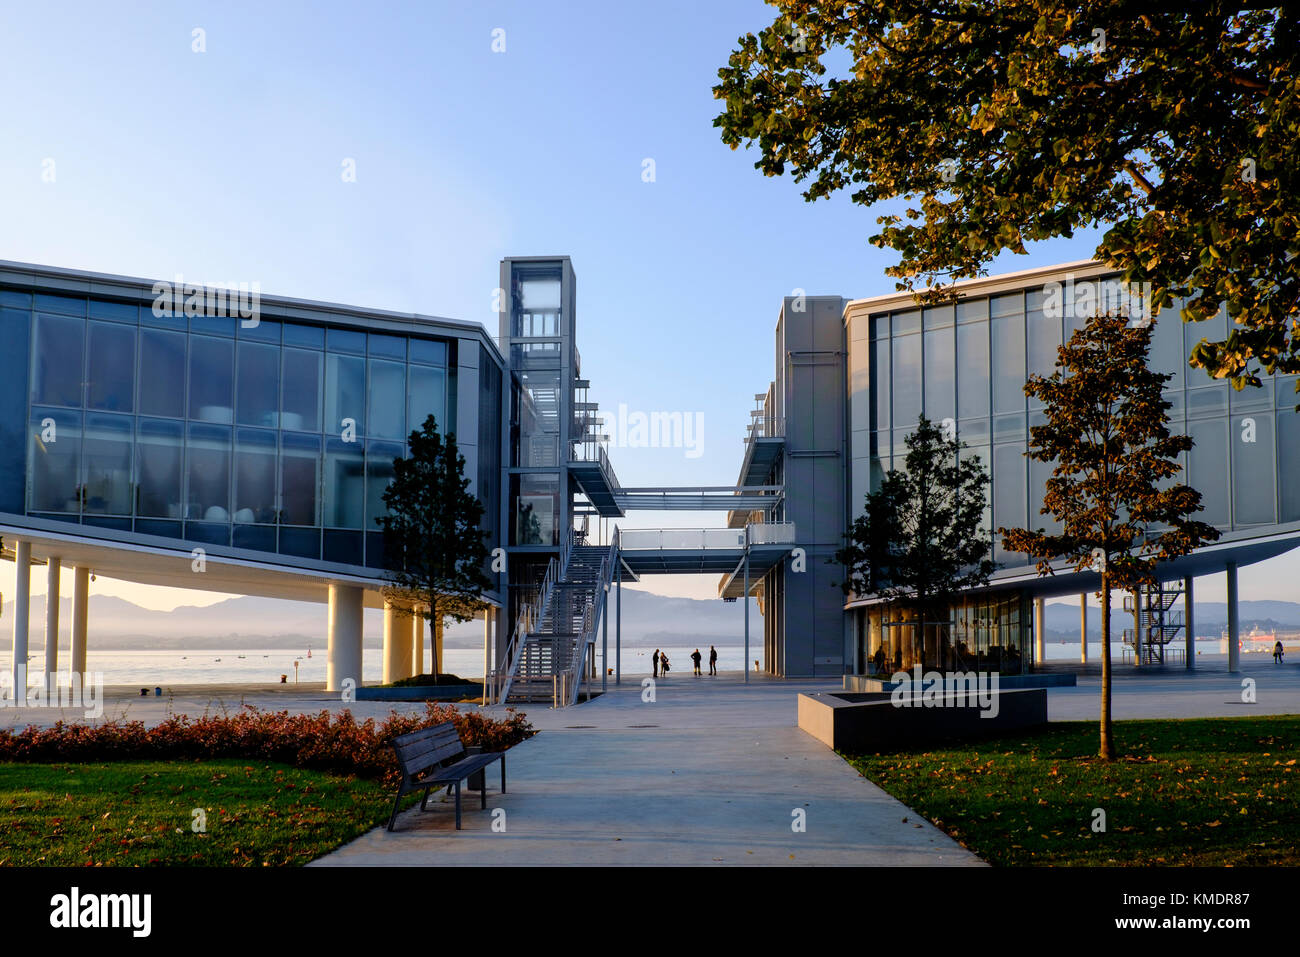 The Centro Botin, designed by Renzo Piano, overlooking the bay at  Santander, Spain, Europe - Stock Image